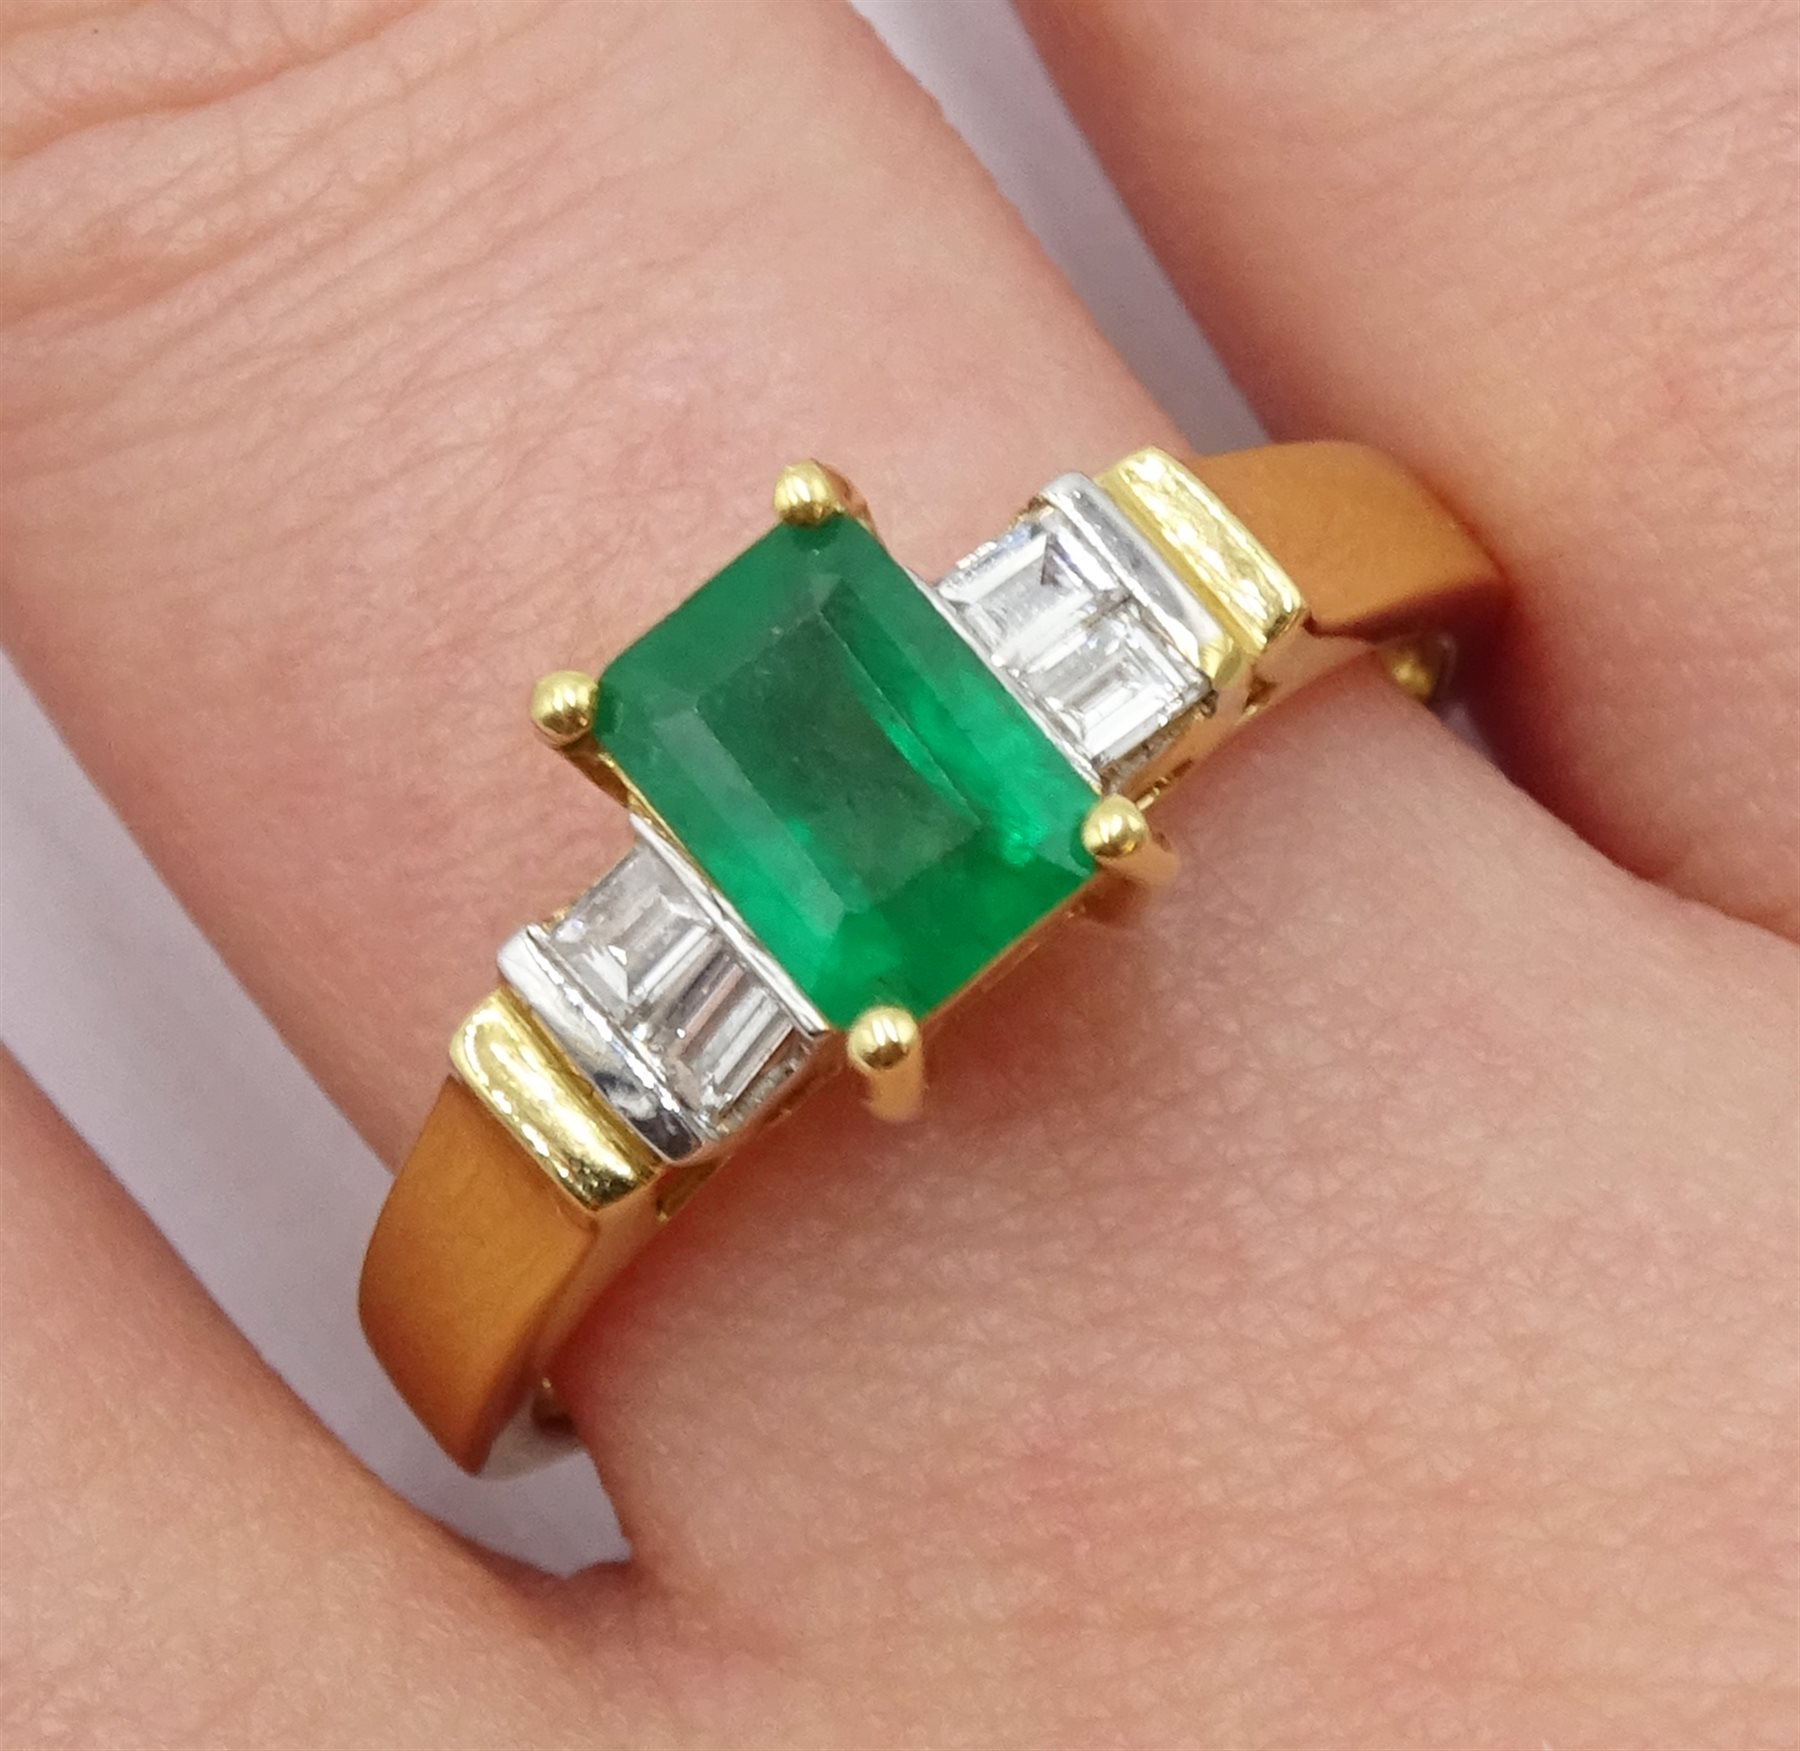 18ct gold emerald ring - Image 2 of 4